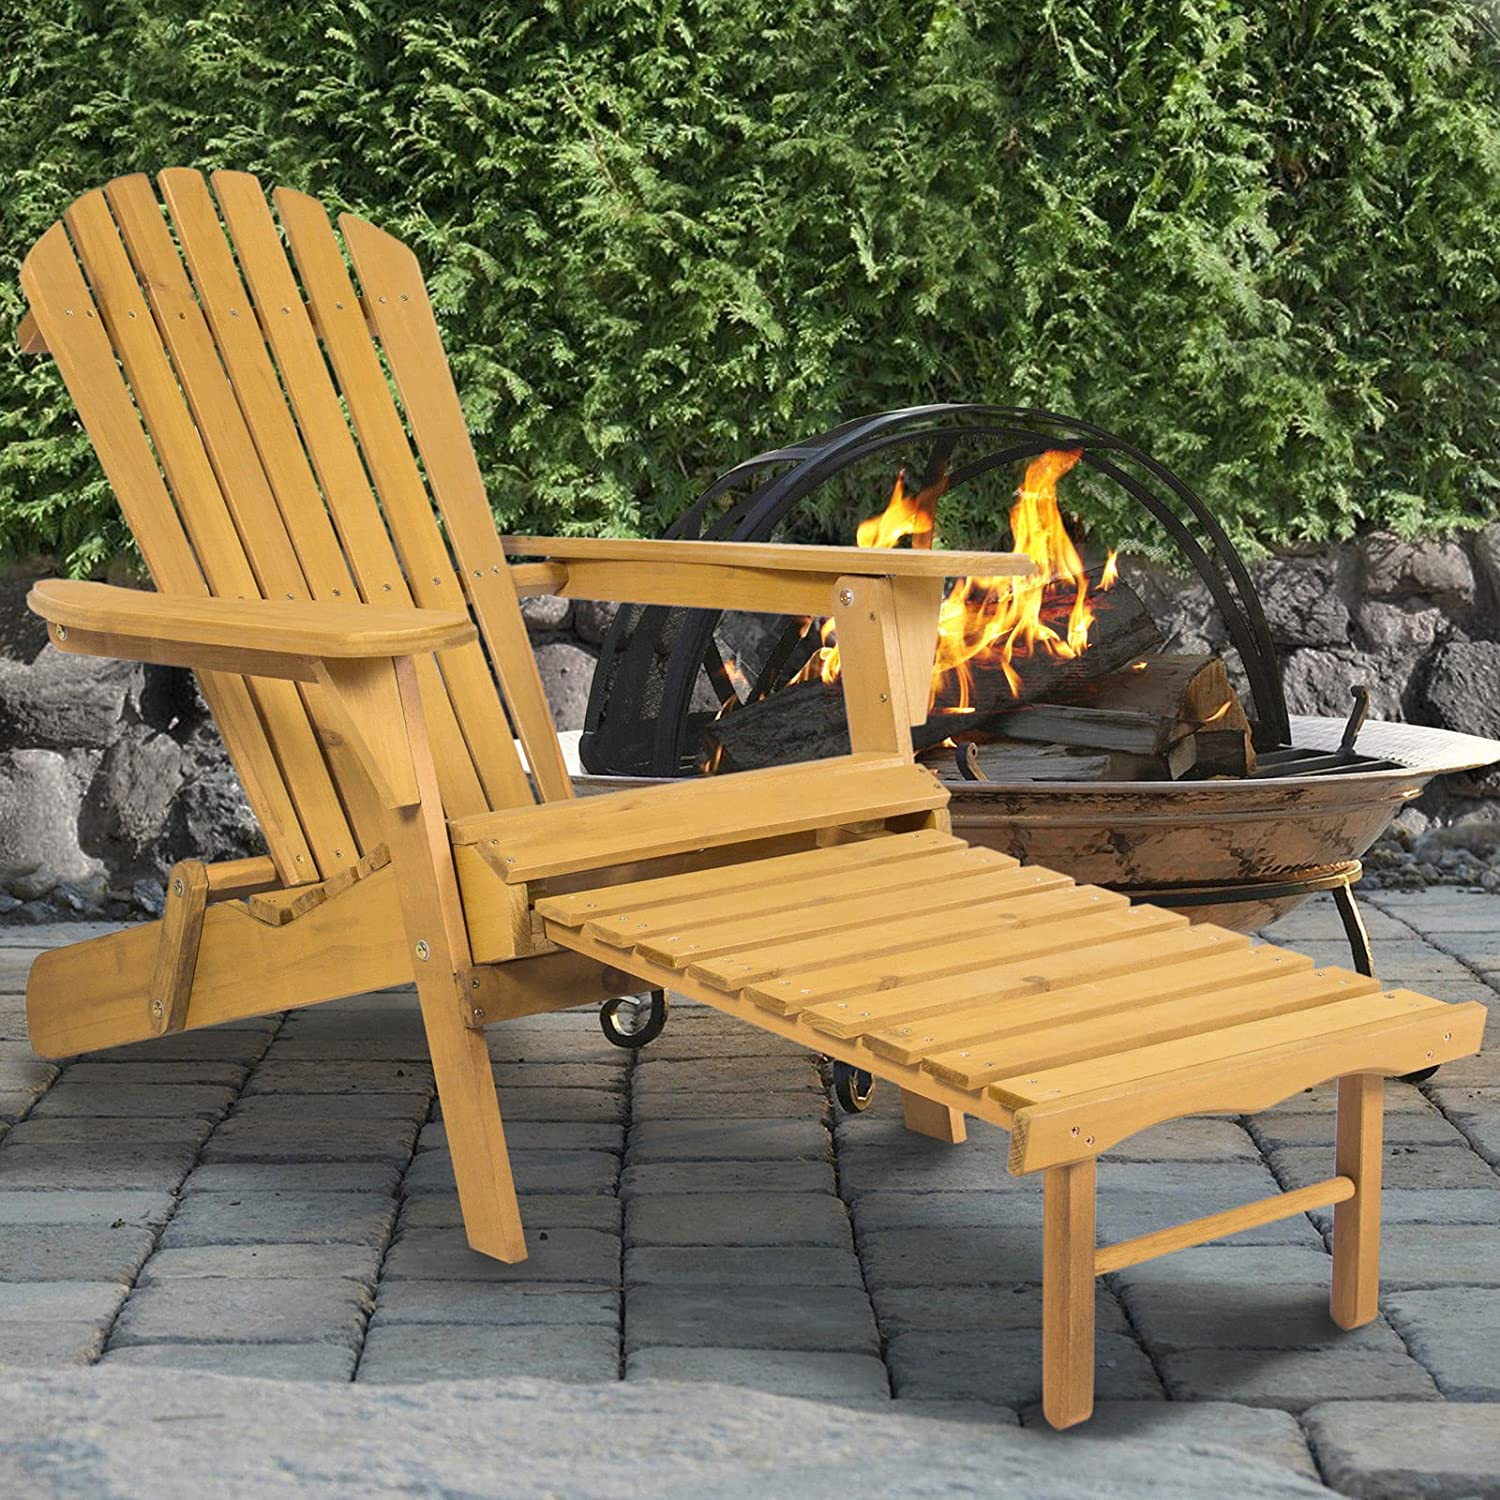 Amazon.com: Best Choice Products SKY2254 sillas Adirondack ...